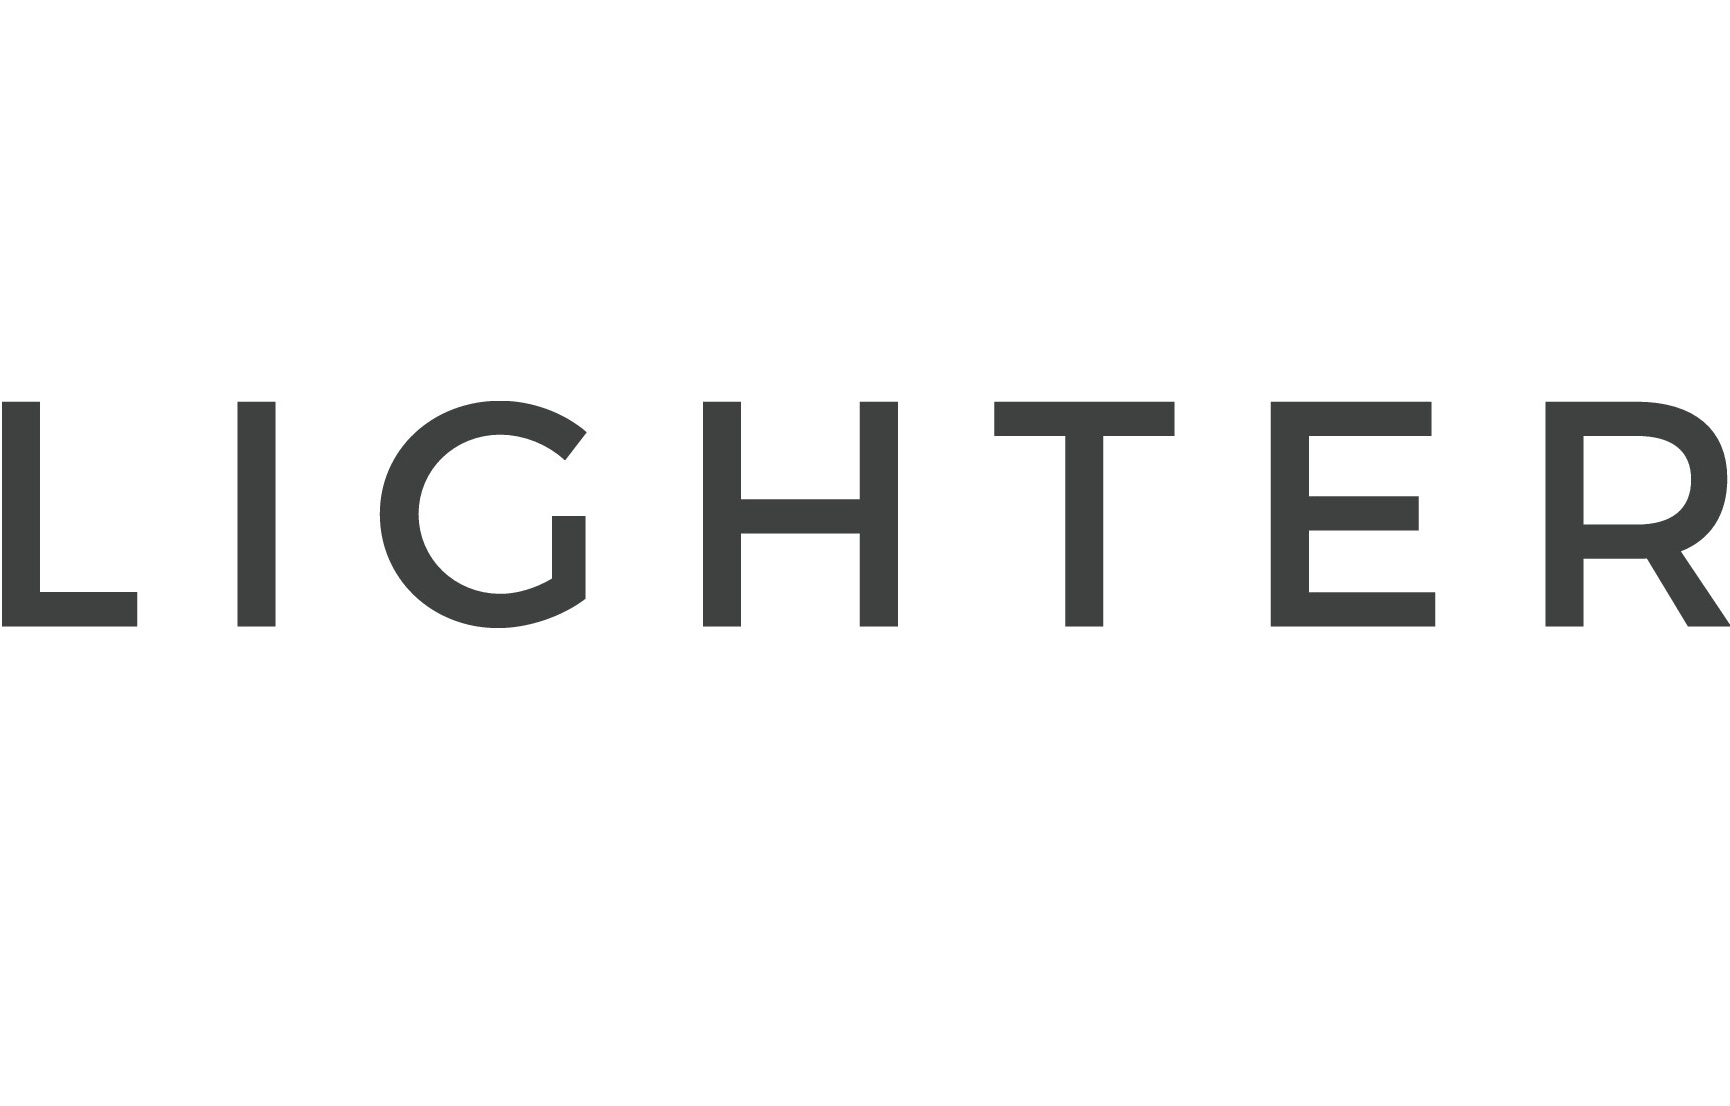 LighterLogo.jpg